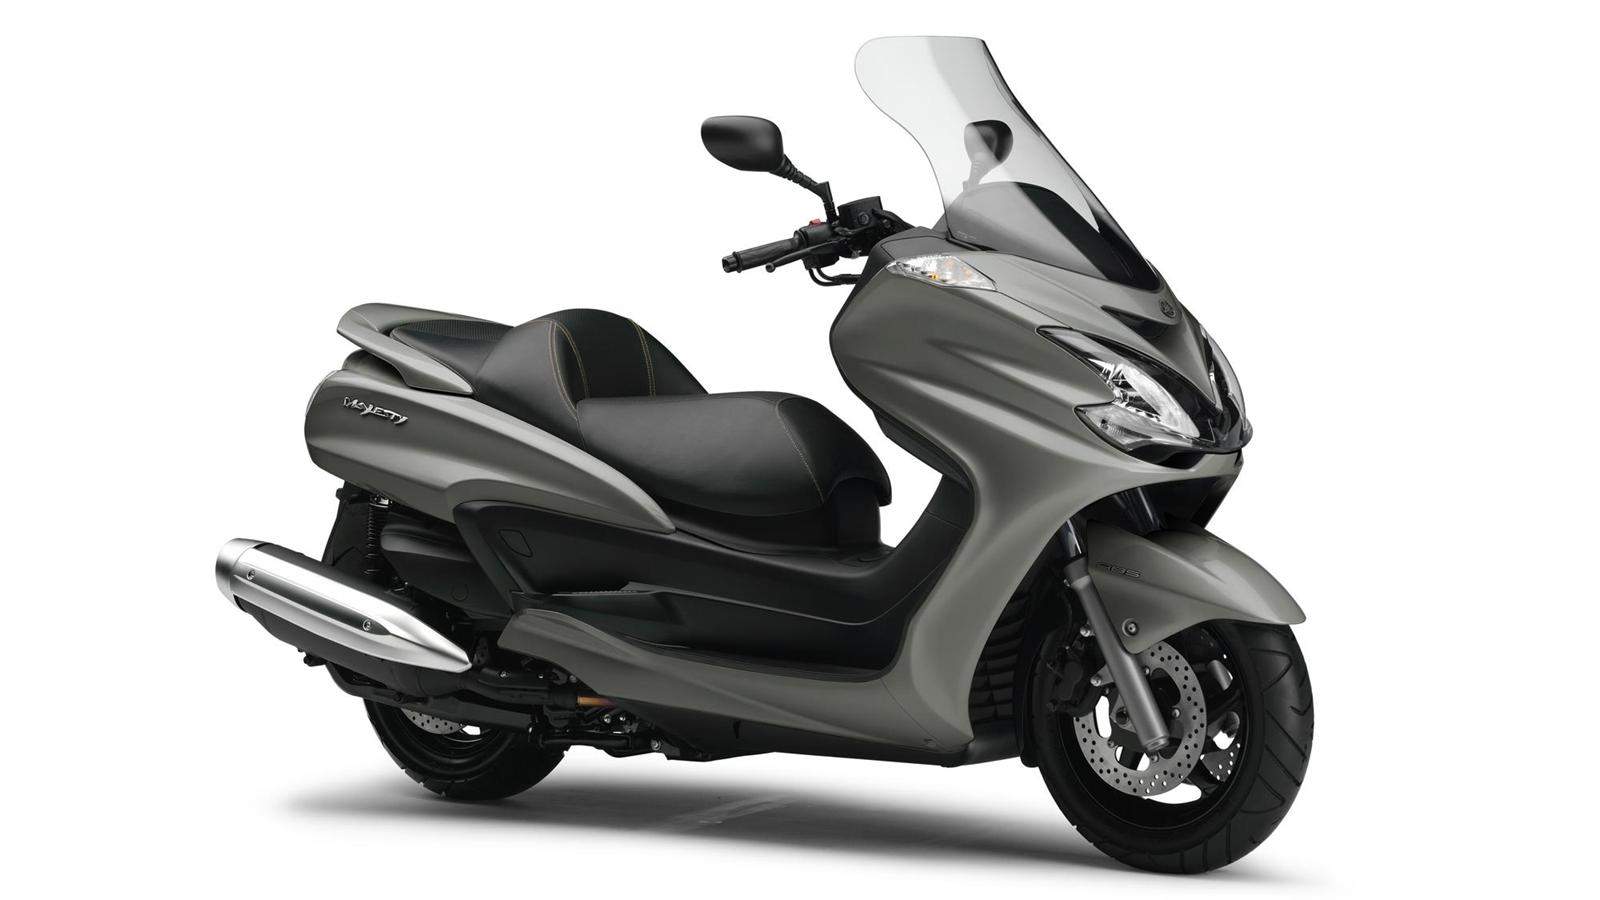 Мотоцикл Yamaha MAJESTY 400 2013